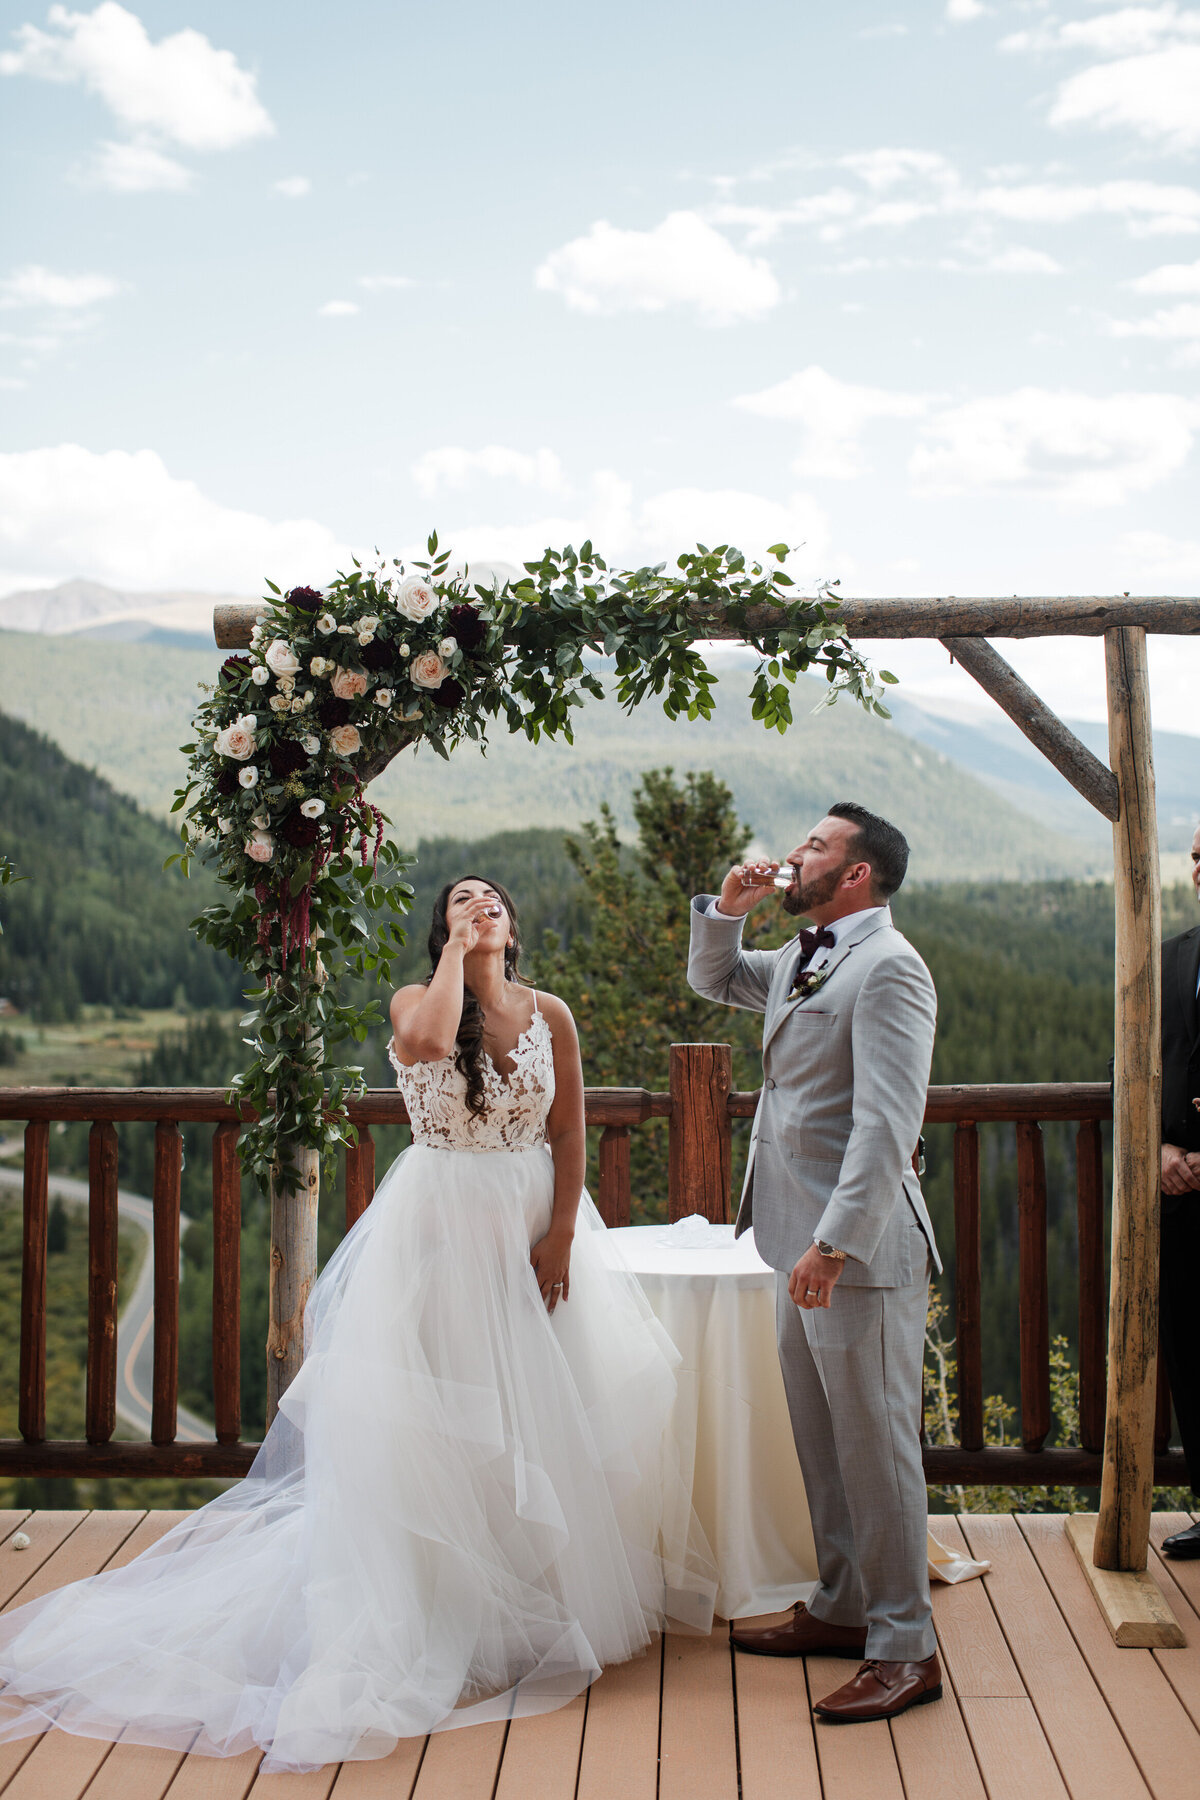 Couple takes a tequila shot in the middle of their wedding ceremony in Colorado